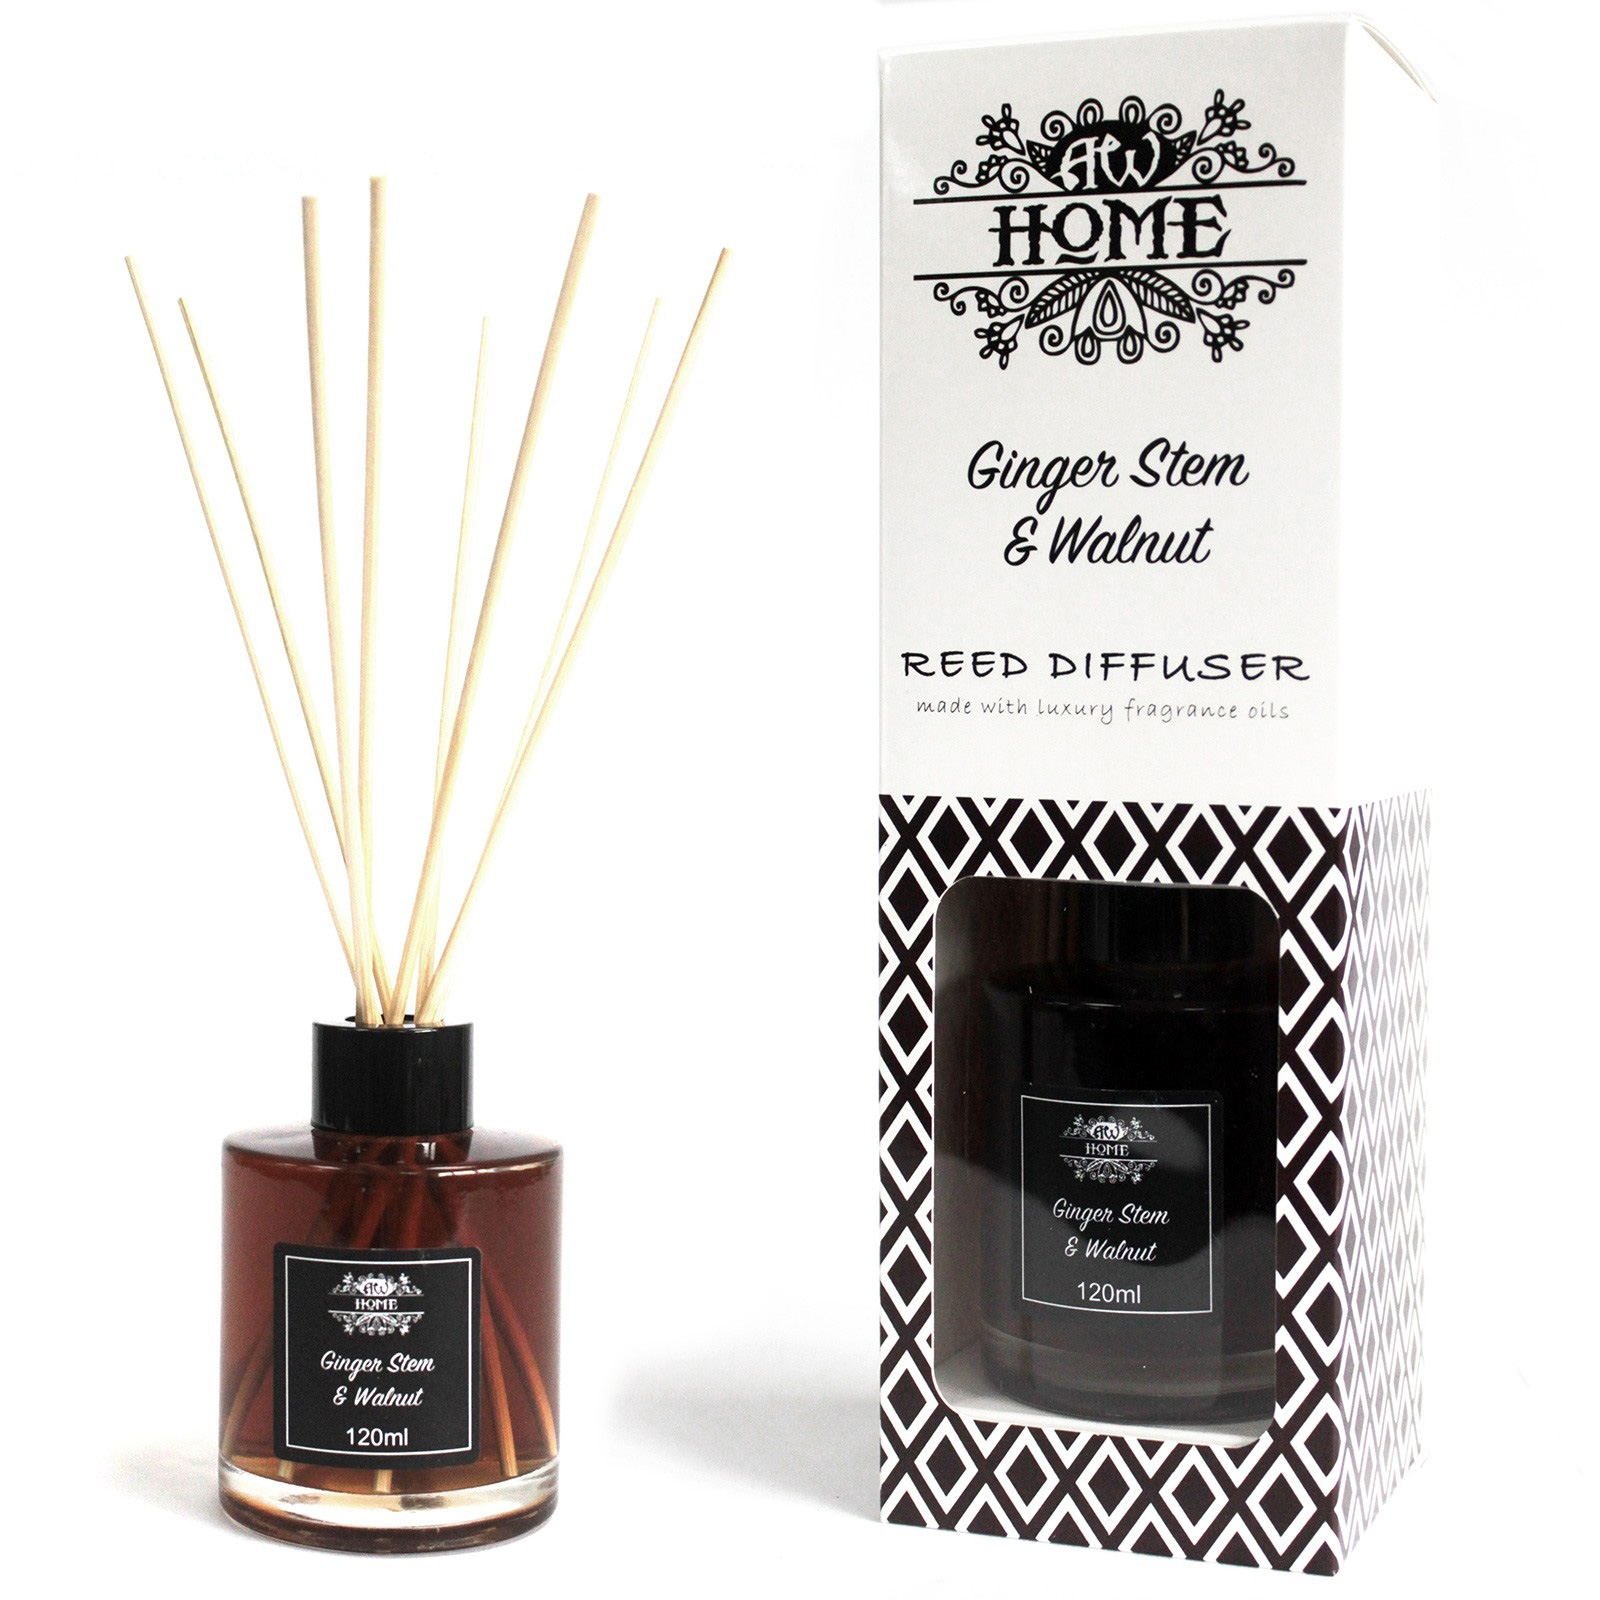 Ginger Stem And Walnut Reed Diffuser 120ml